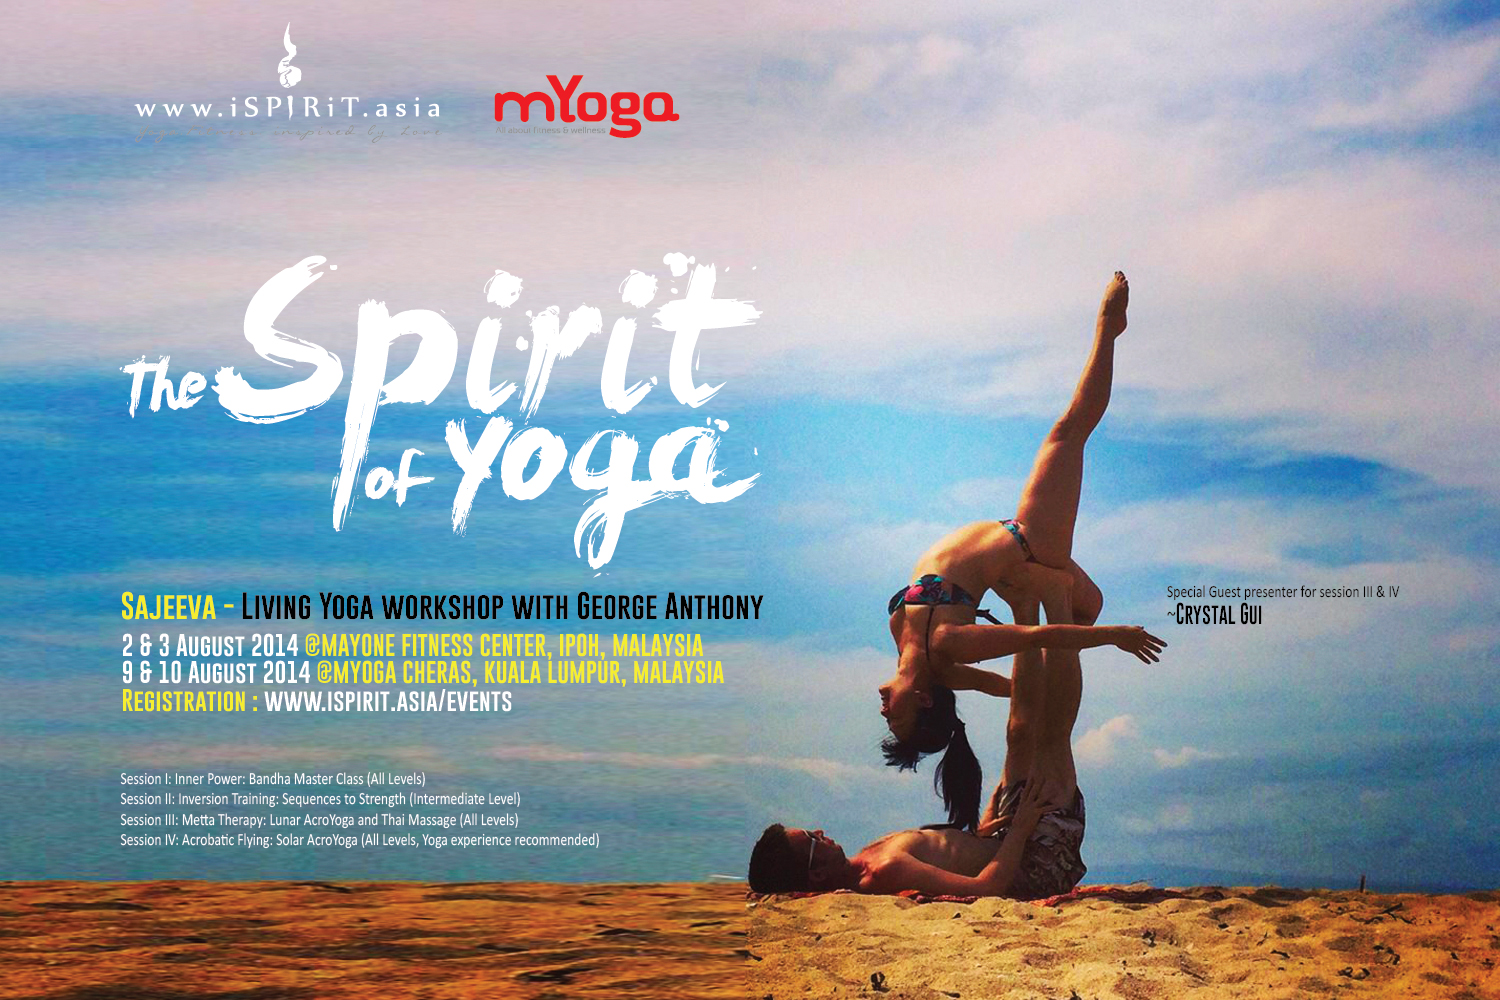 The Spirit Of Yoga Living Workshop With George Anthony IPOH